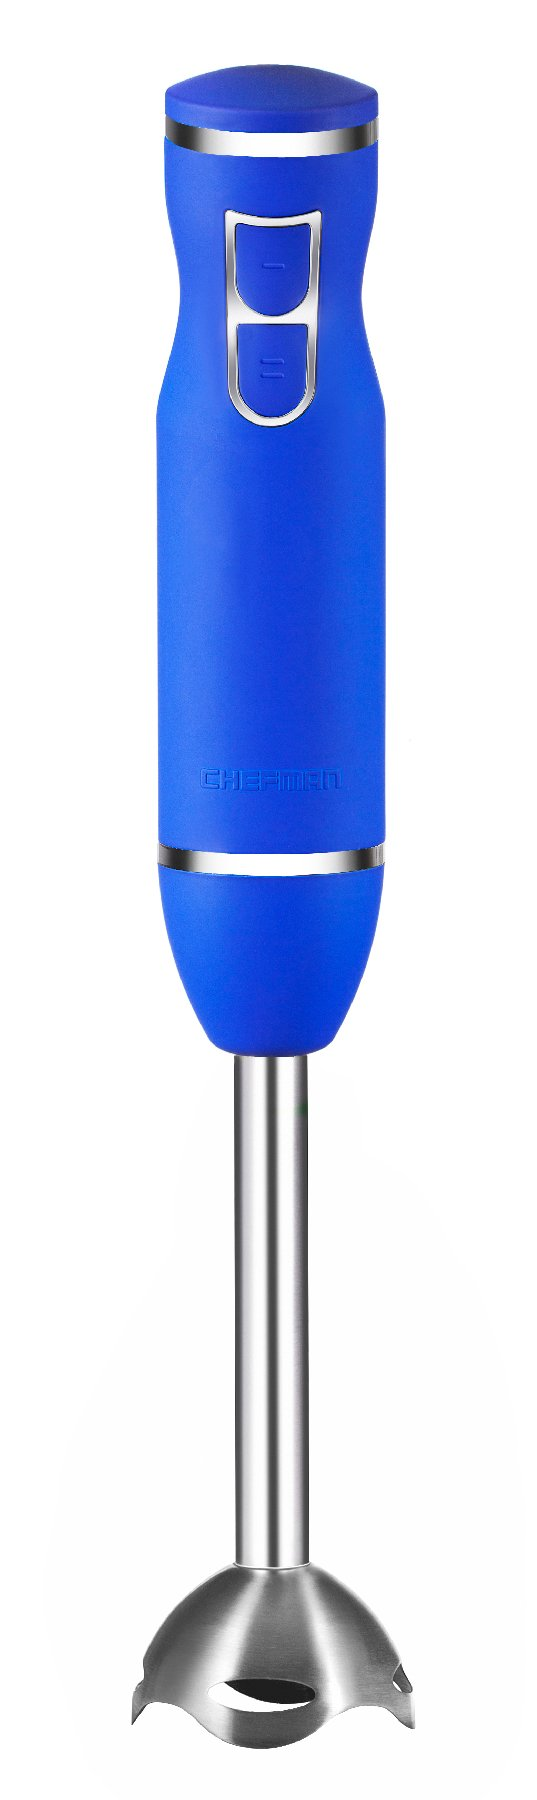 Chefman Immersion Hand Blender Includes Stainless Steel Stick Blender and Blades, Powerful 2-Speed Control One Hand Mixer, Soft Touch Grip, Royal Blue